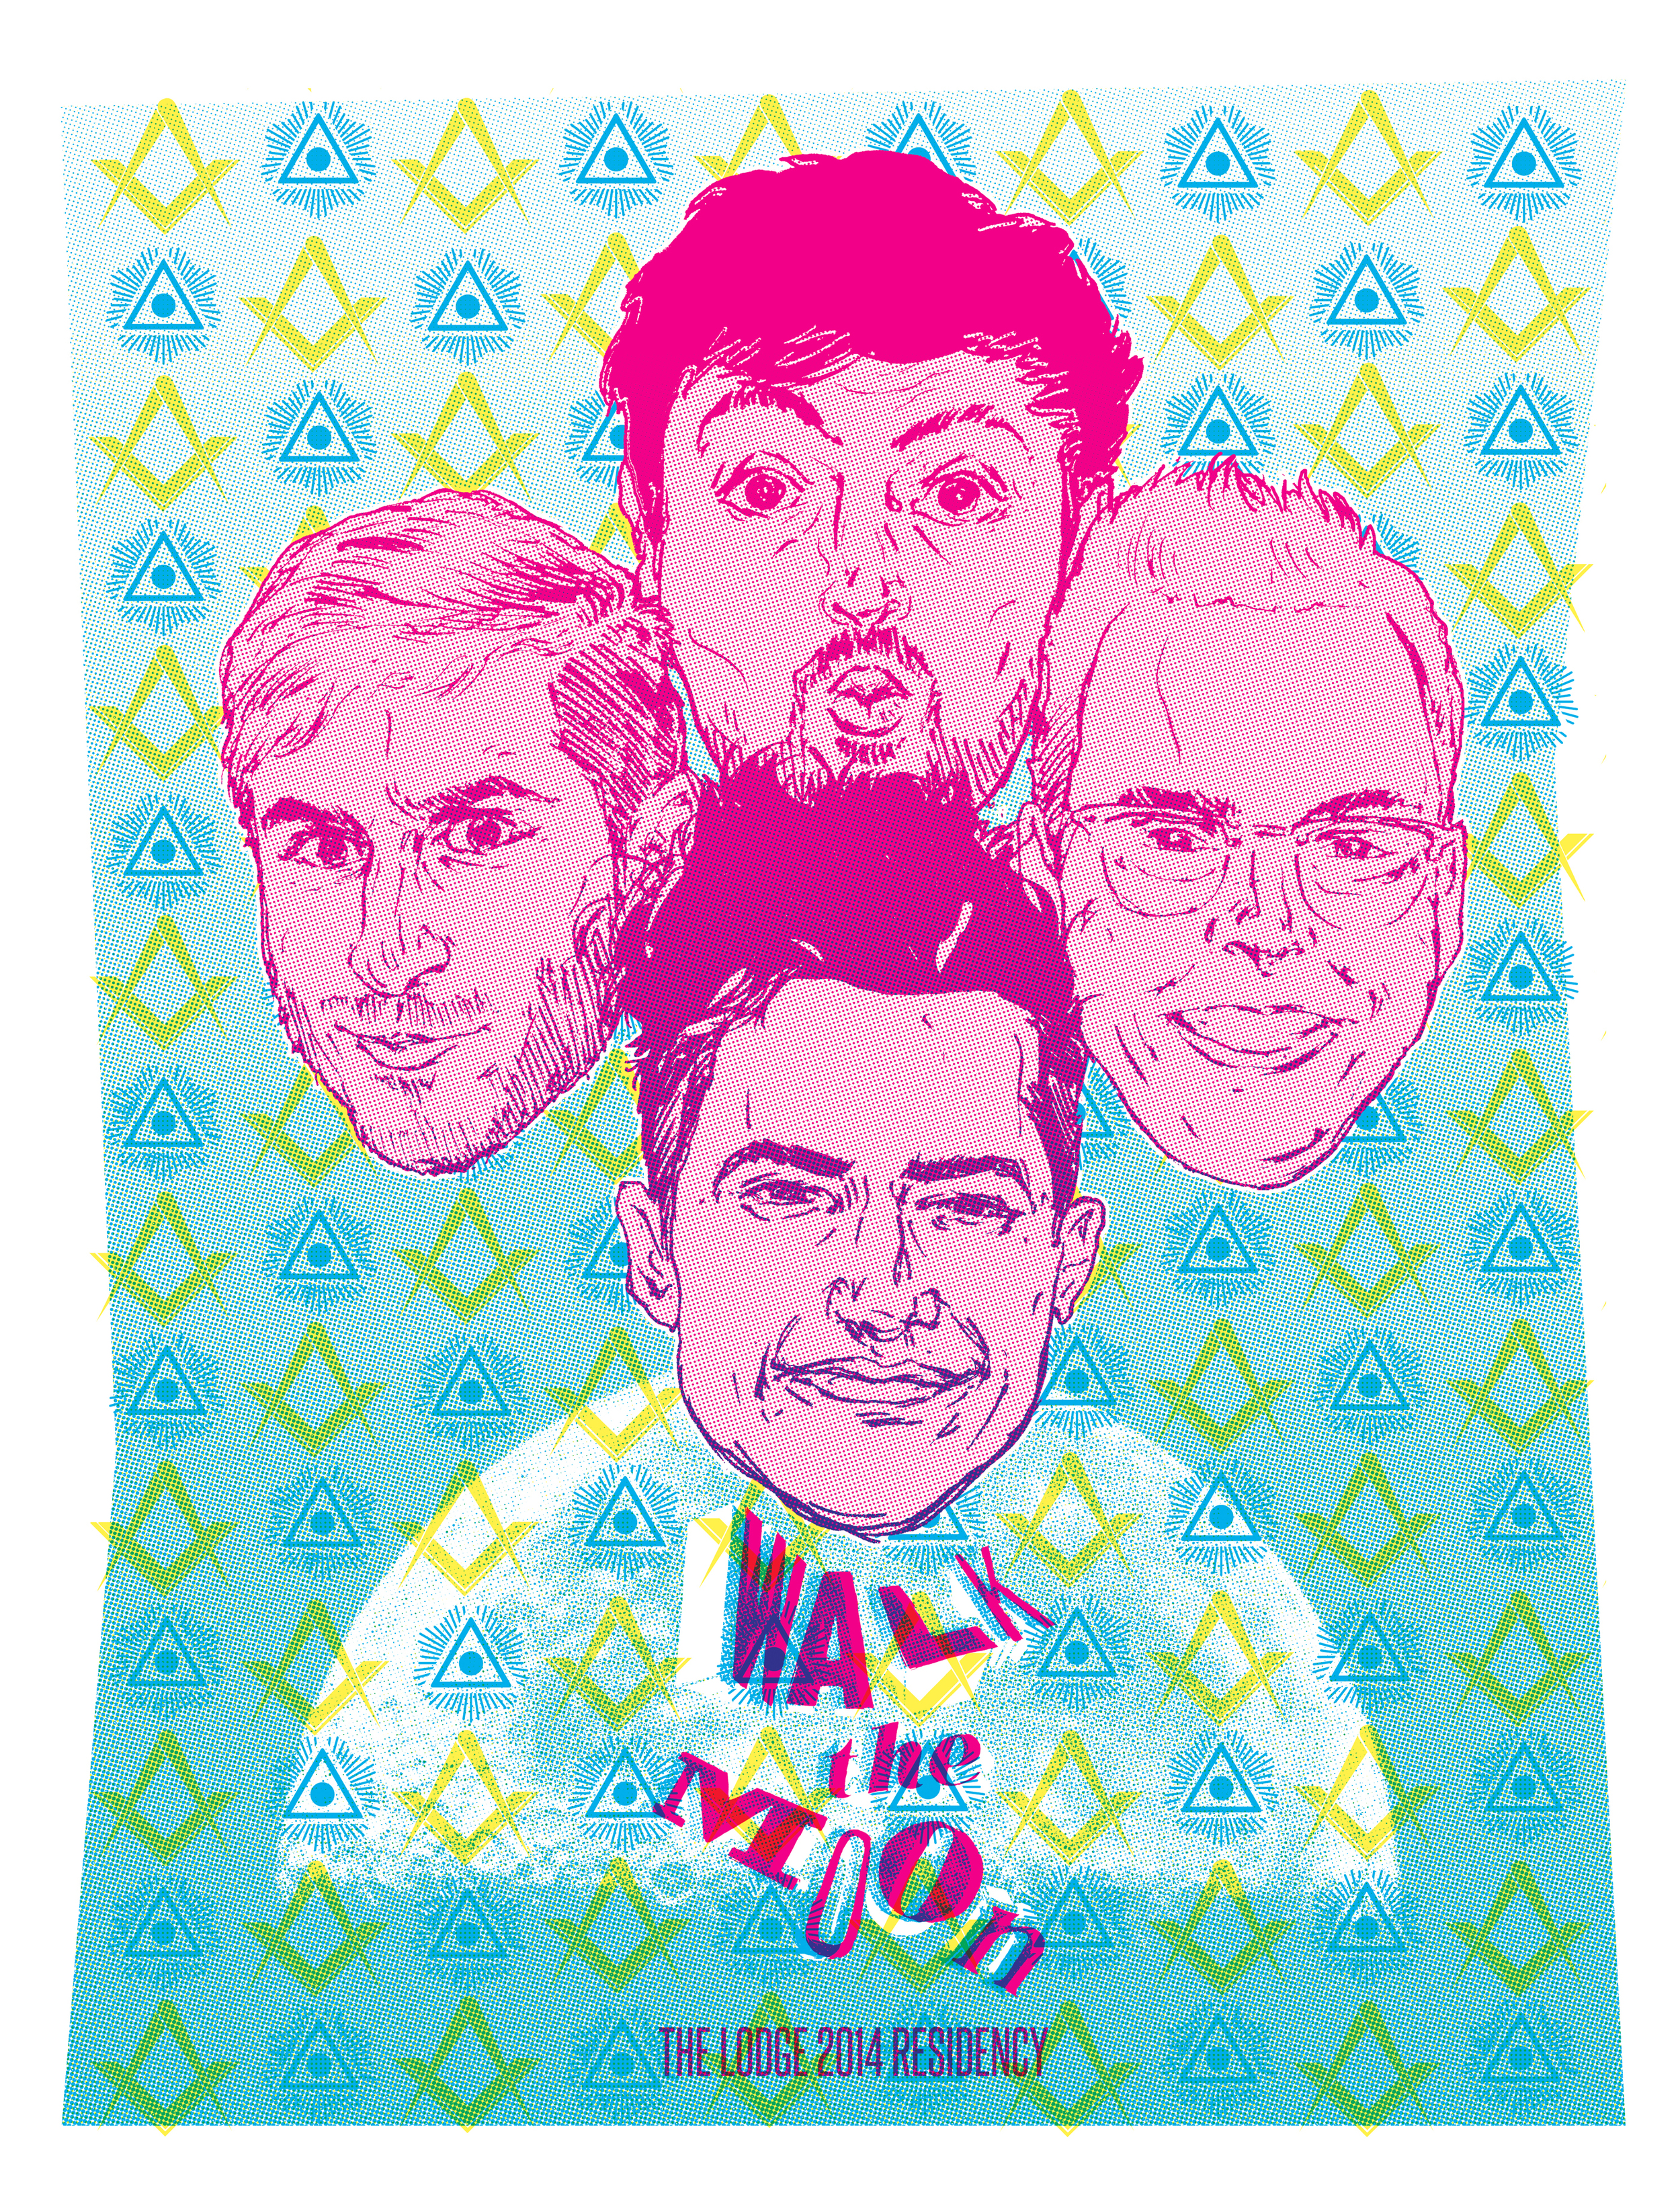 Lodge Artist Residency 2014: Walk the Moon